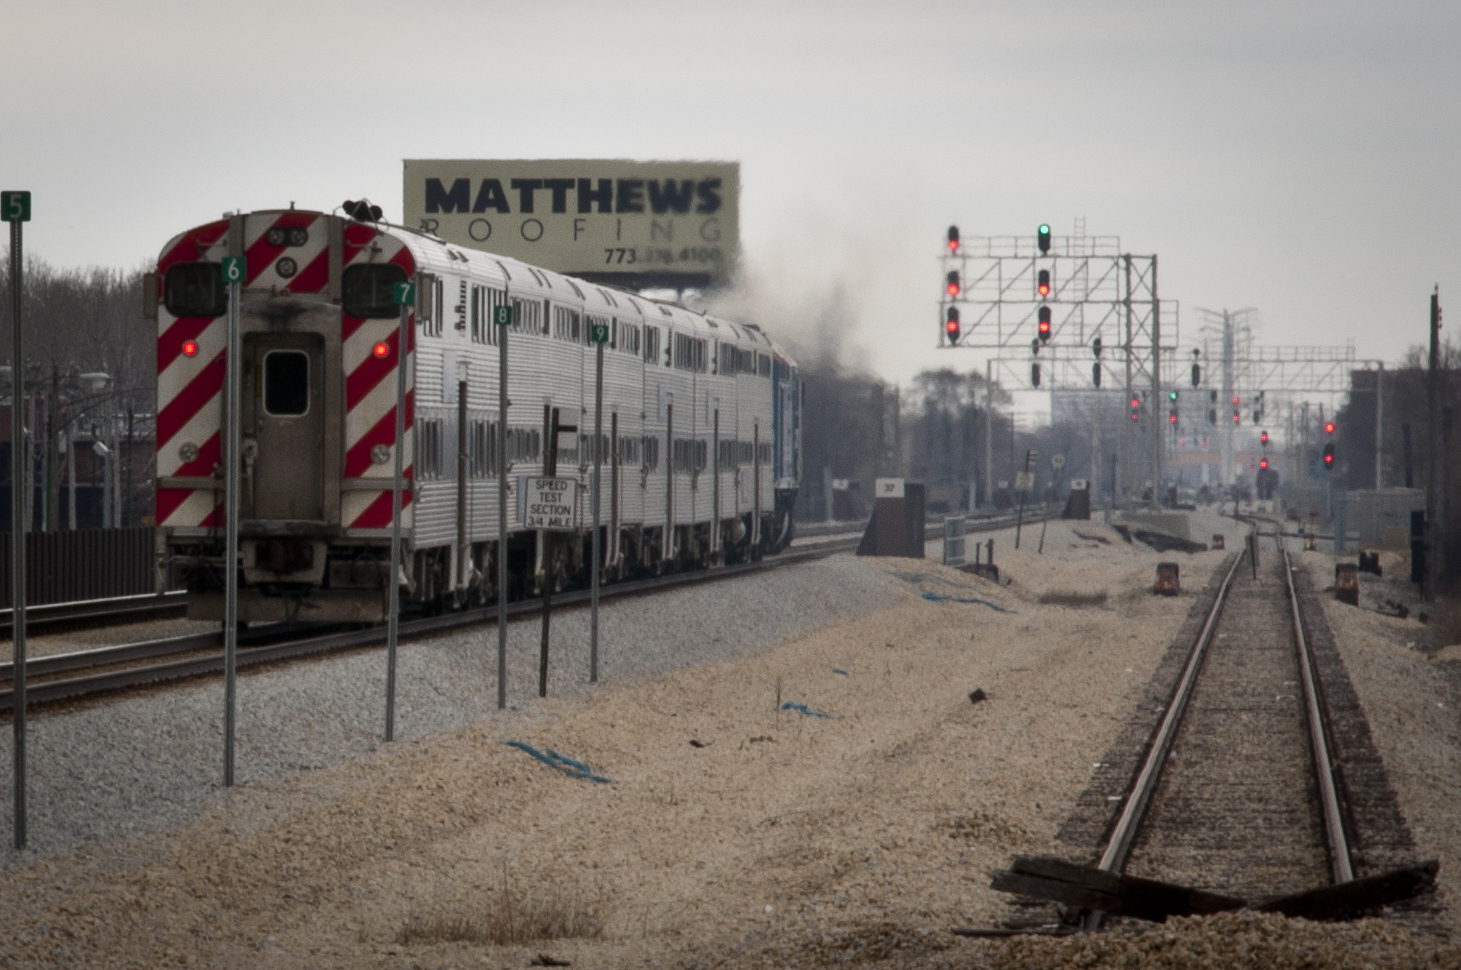 file:metra train no. 209 on the rock island district mainline